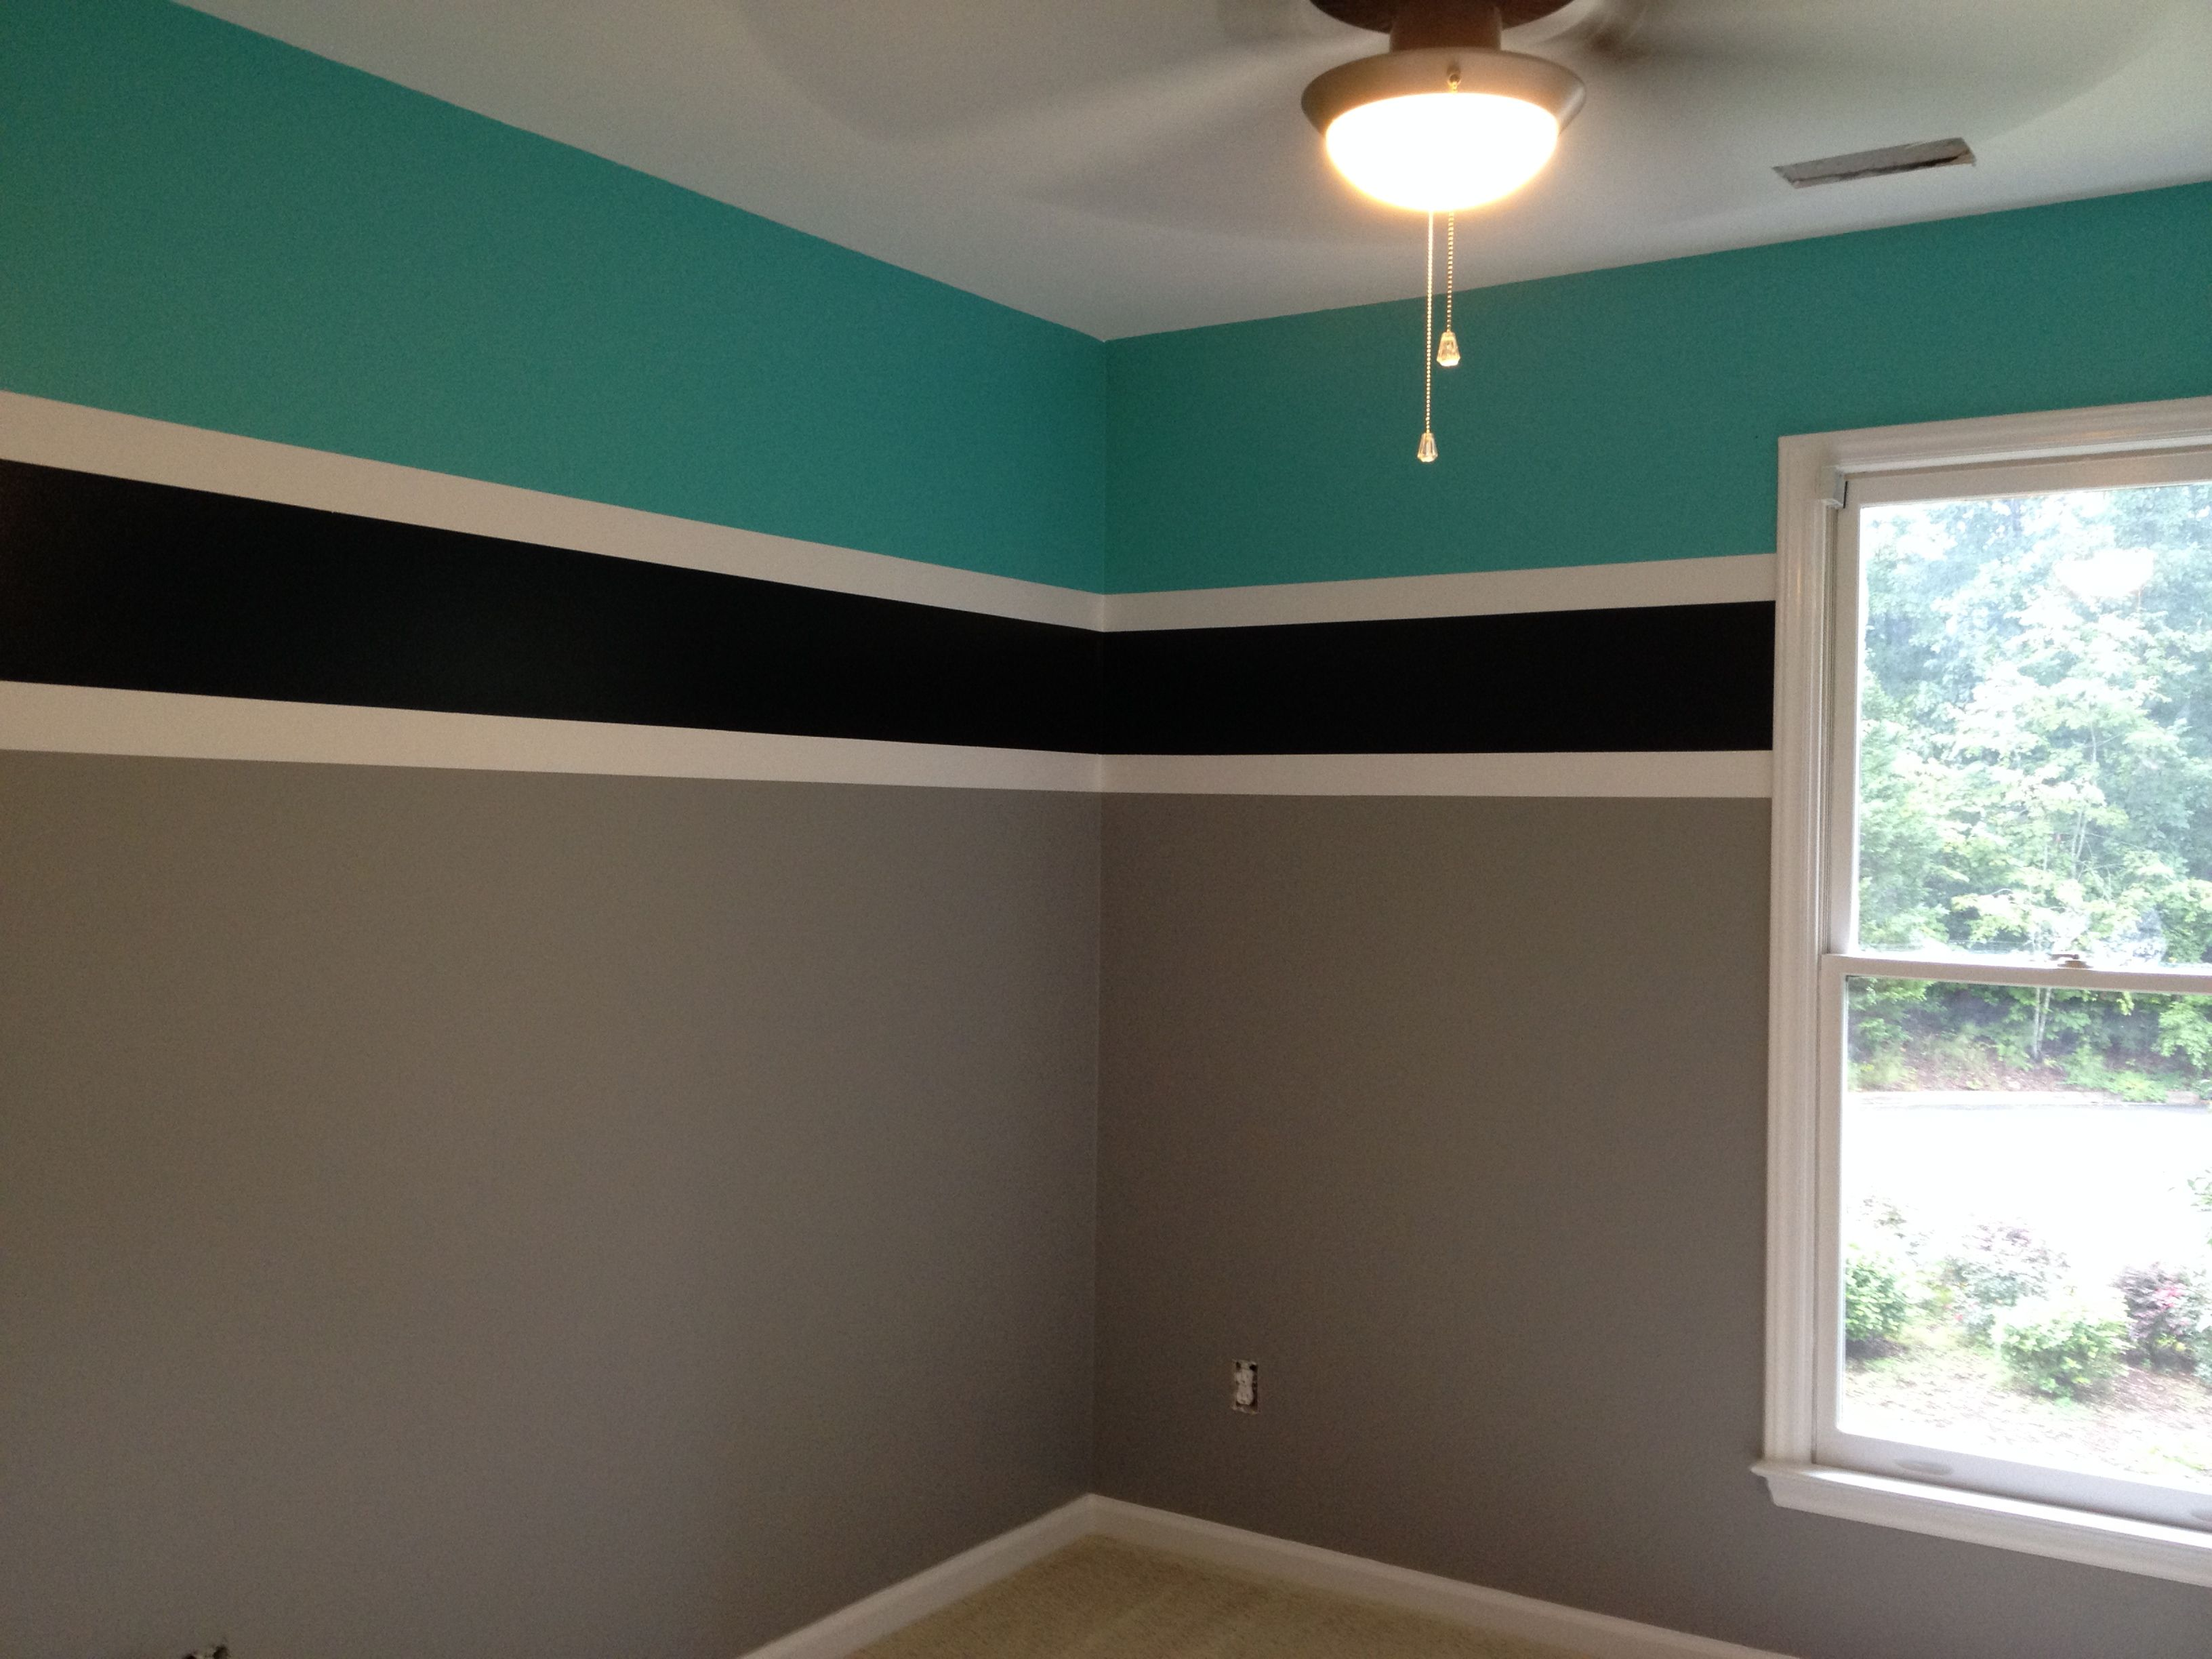 final product, teenage boys room, colors for a swimmer. Benjamin Moore Teal  tone